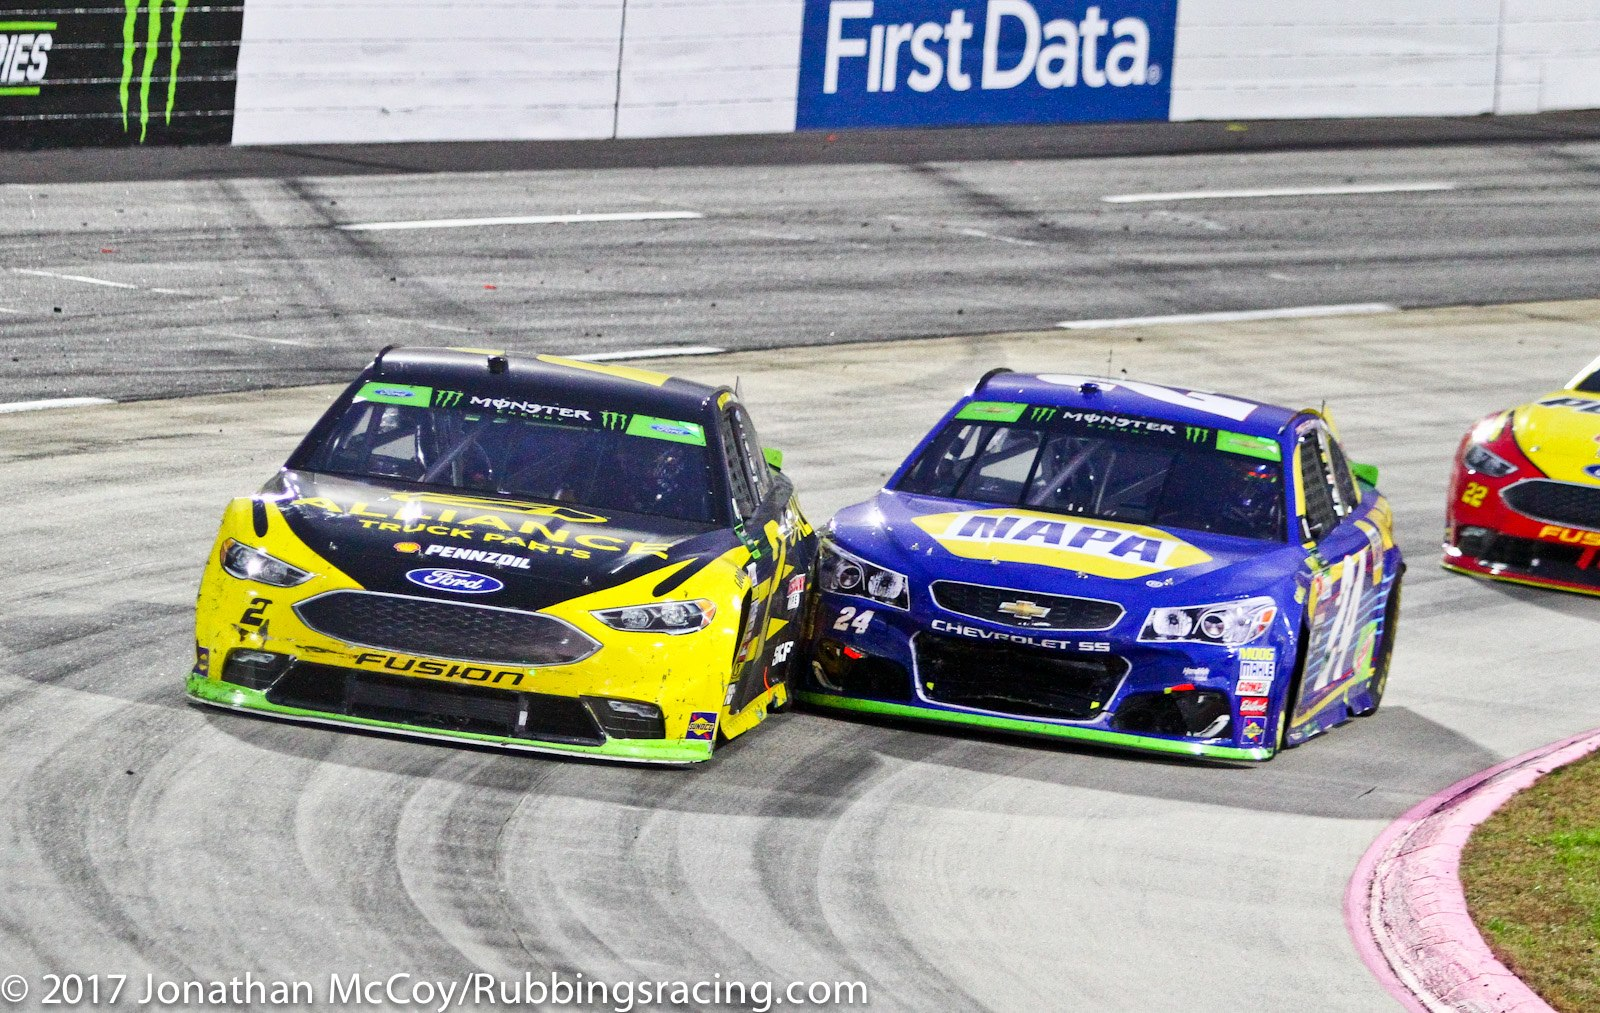 MENCS: Kyle Busch drives by late wrecks, wins First Data 500 ...